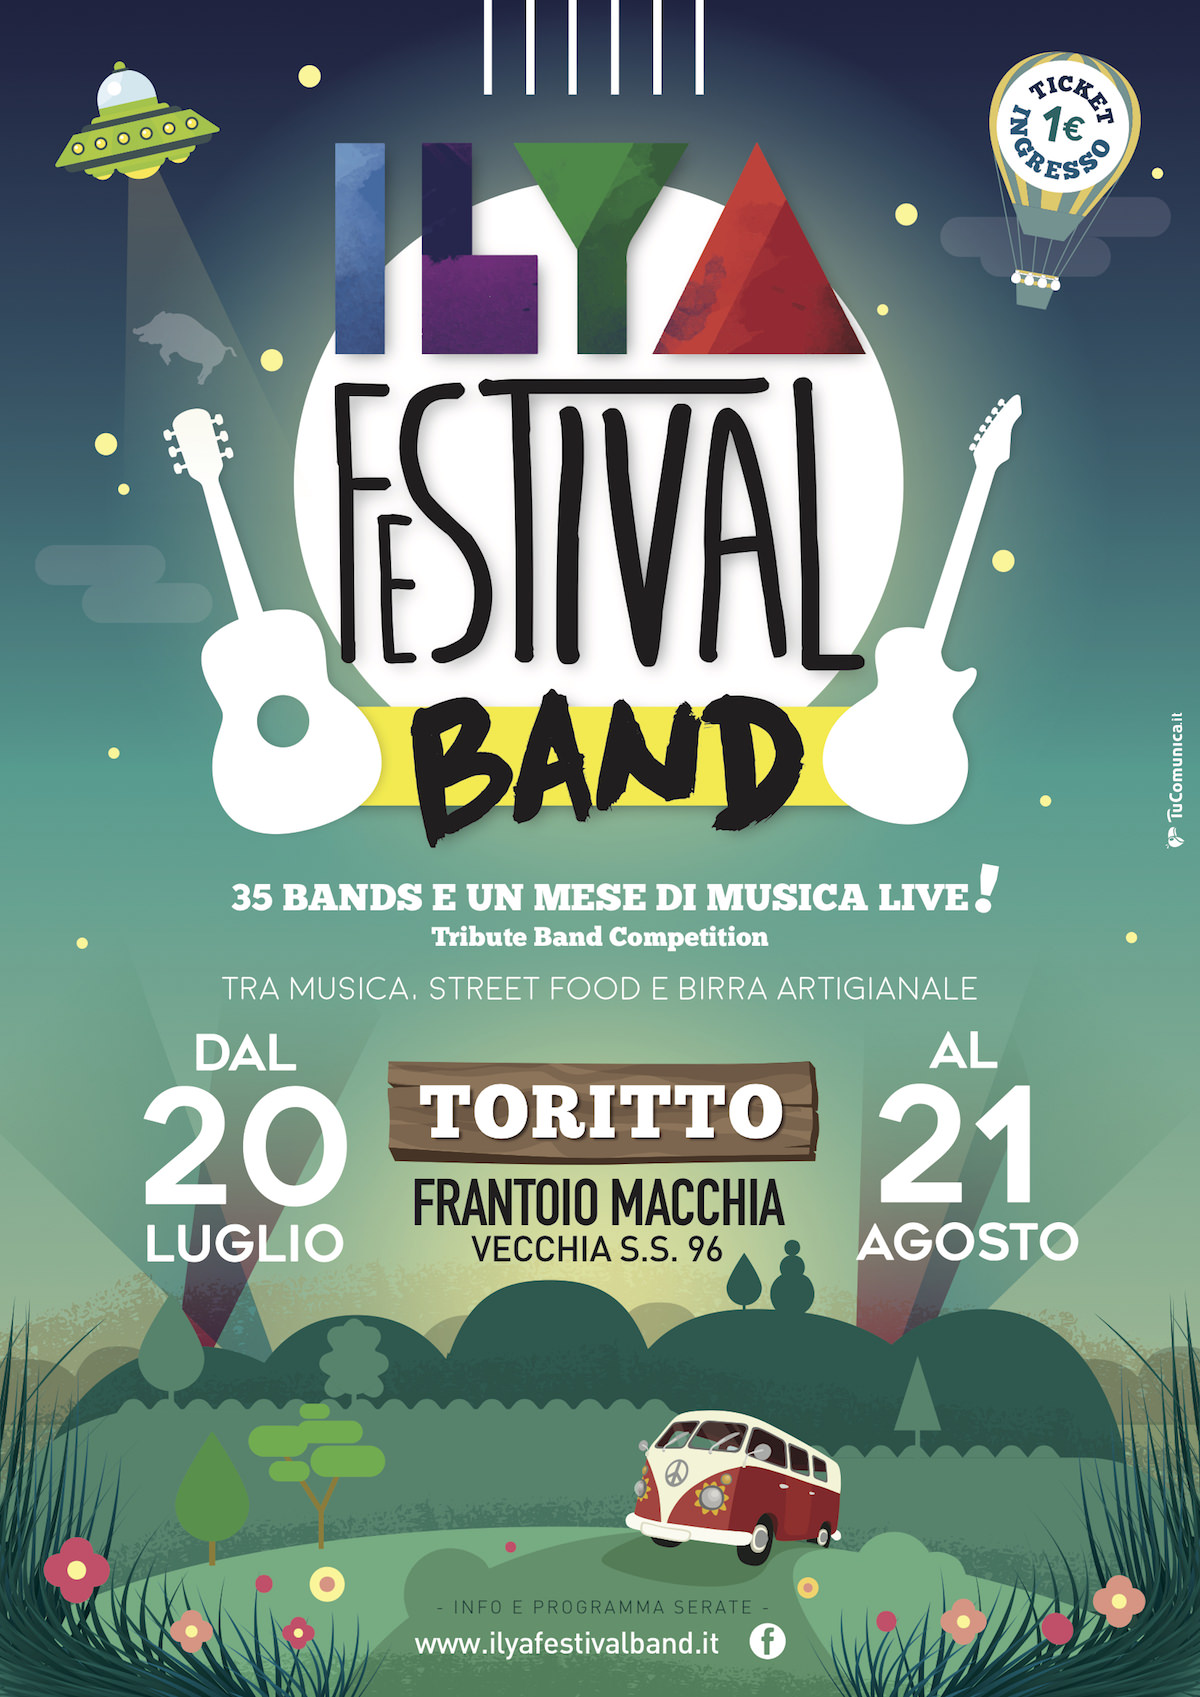 music-festival-band-locandina-design